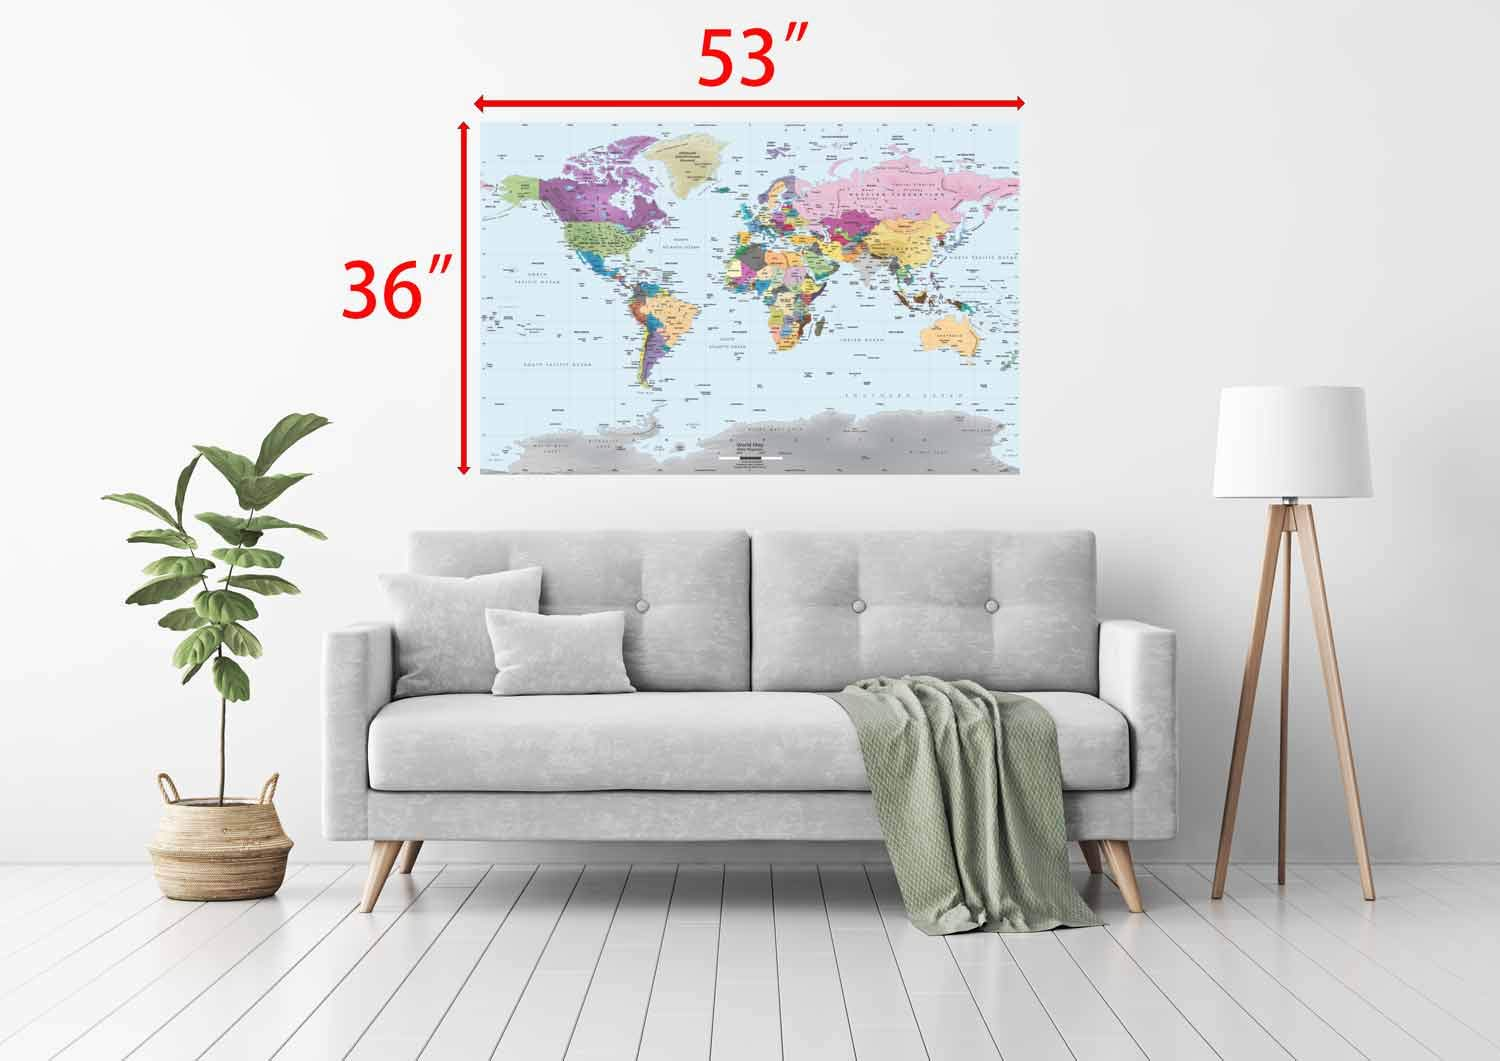 Academia Maps World Map Wall Mural - Modern Colorful Map - 53 x 36 - Premium Self-Adhesive Fabric - Professional-Grade DIY by Academia Maps (Image #3)